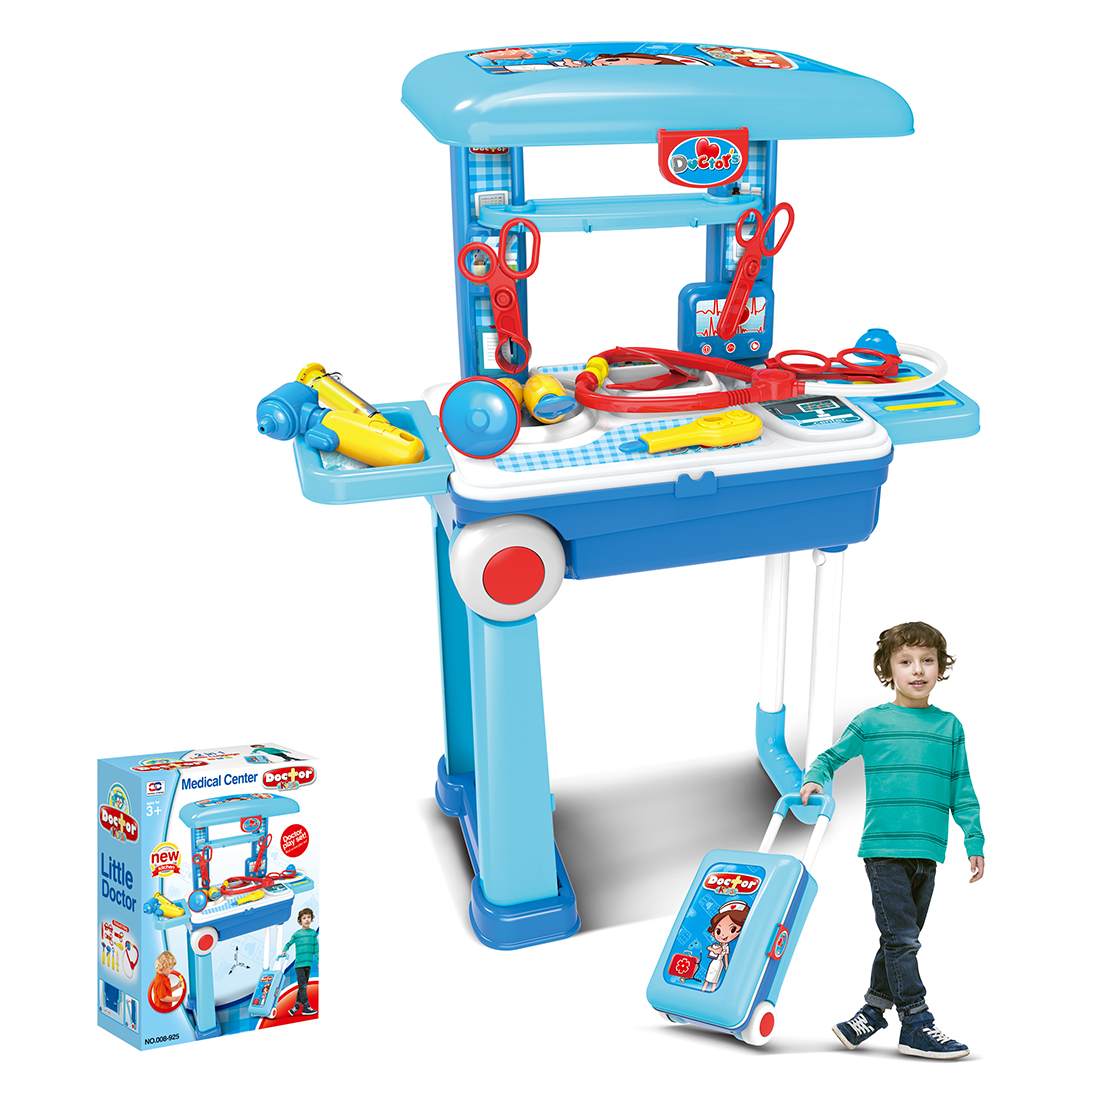 Children Doctor Tool Sets Pretend Play Workbench Playset Educational Toy With Luggage Organizer Doctor Toy